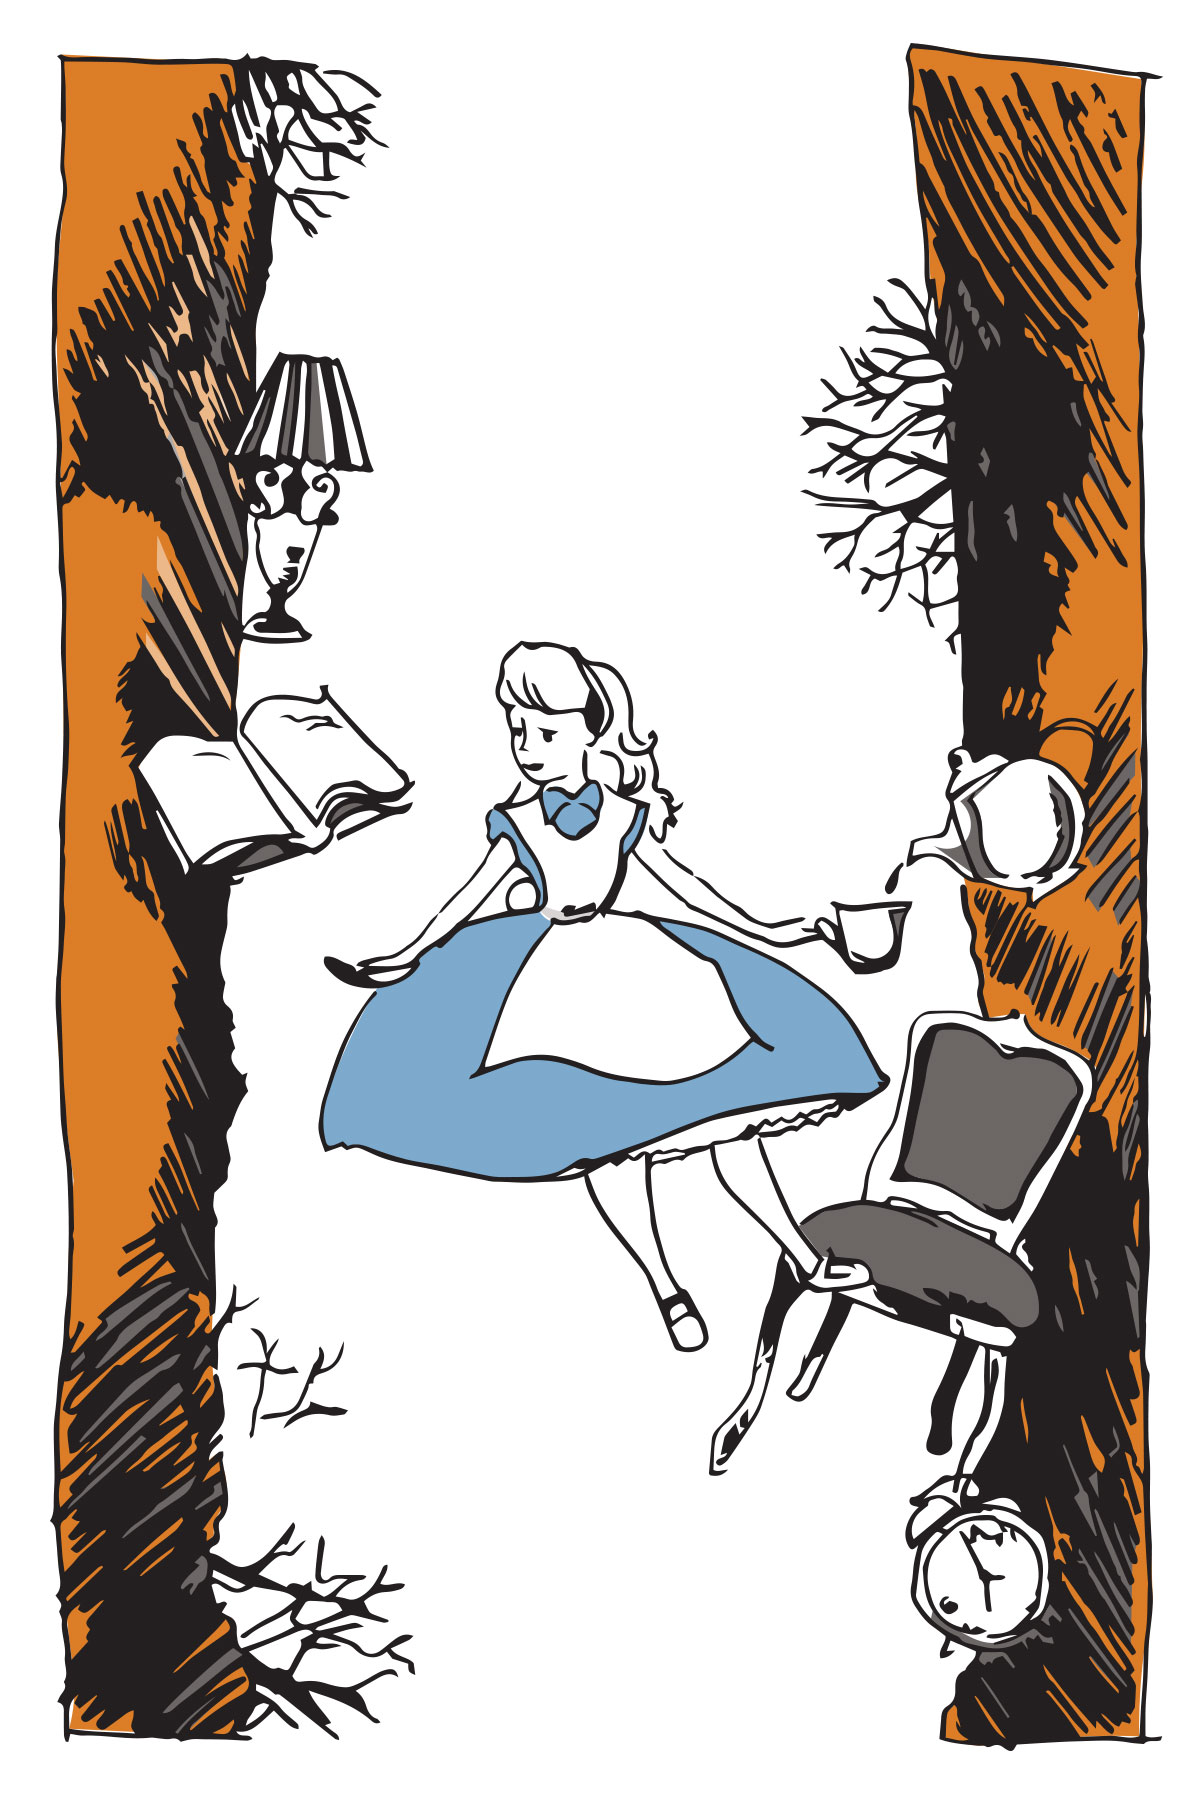 Illustration of Alice in Wonderland falling down the rabbit hole while having a cup of tea poured for her, reading a book, with chair, clock, lamp and roots in tunnel